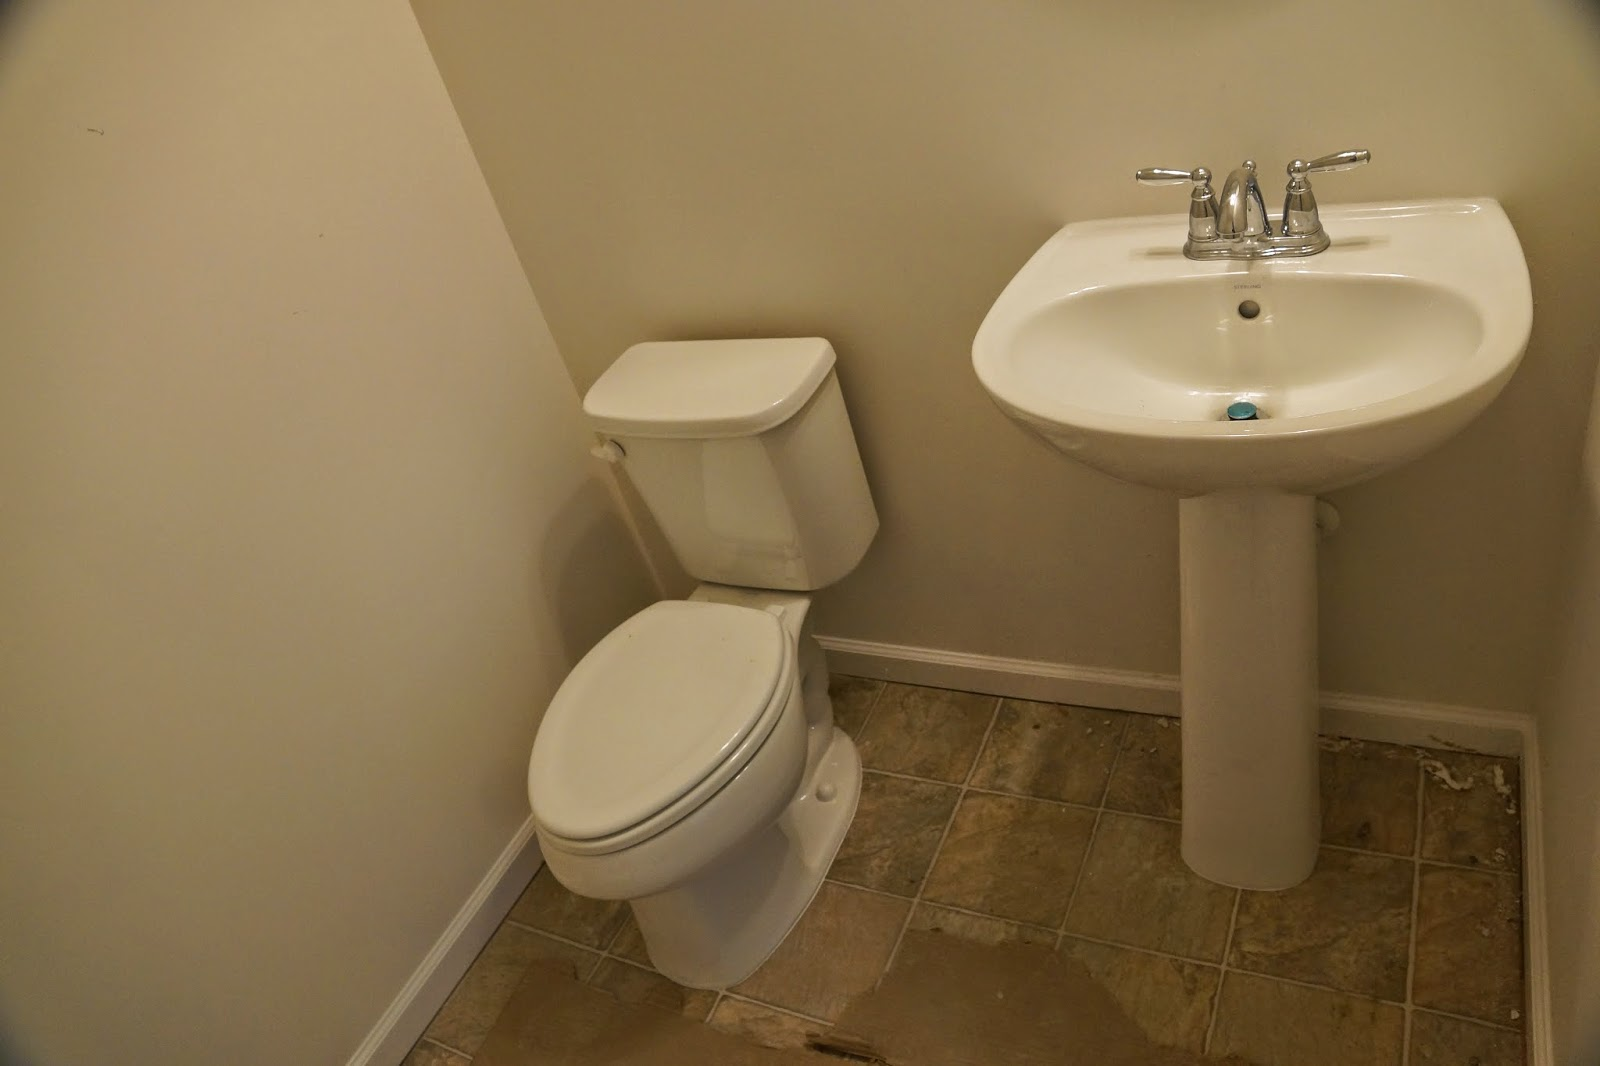 Picture of the powder room plumbing fixtures, toilet, sink and faucet.